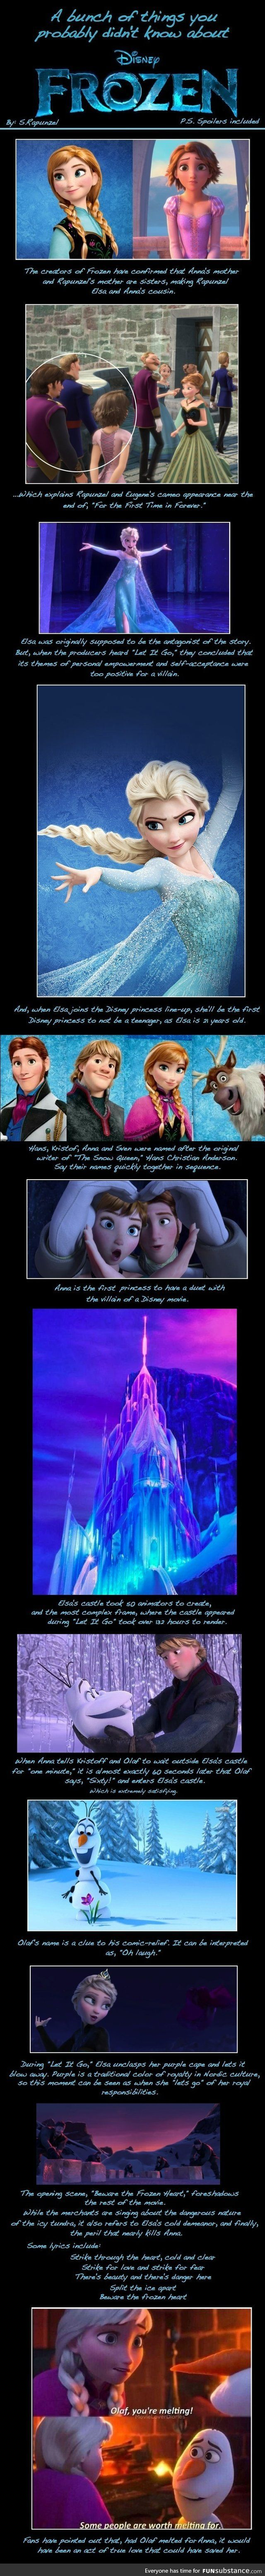 A whole lot of things you didn't realize about Frozen.  Facts about Frozen you missed.